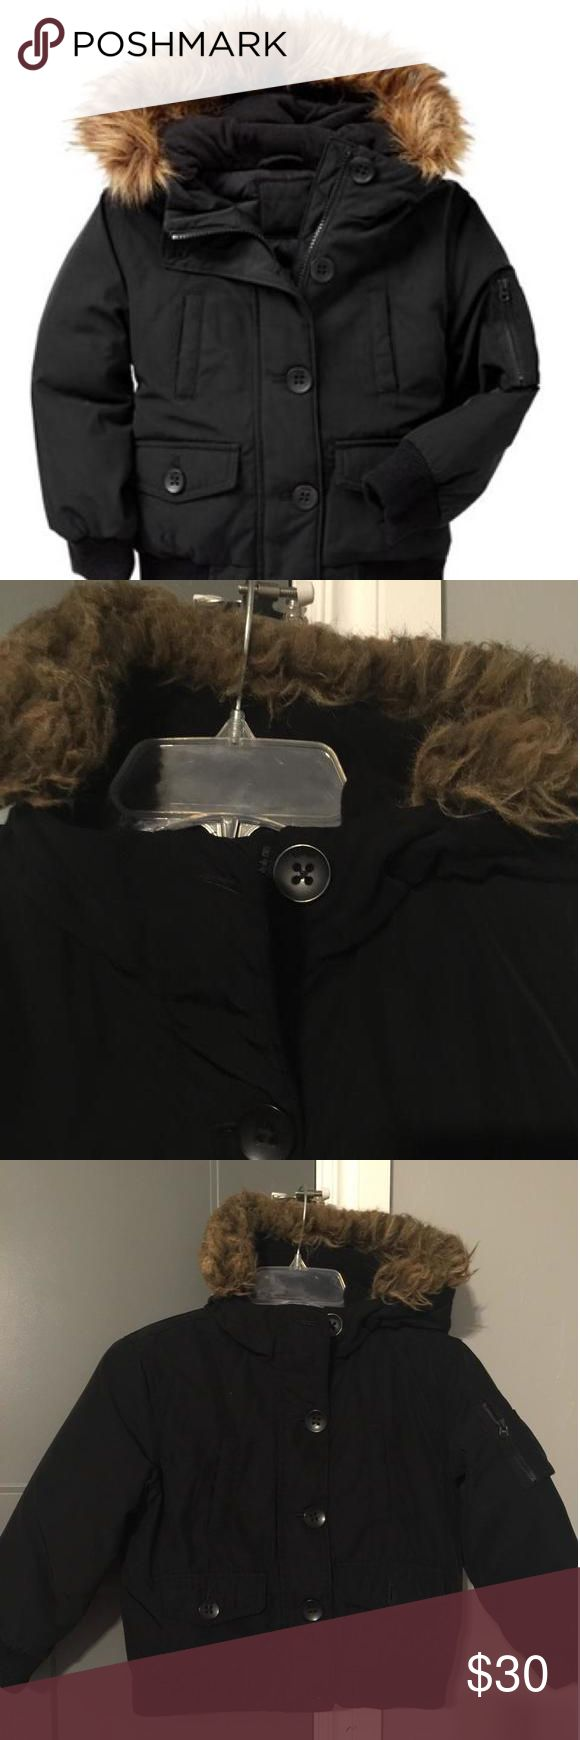 Girls Gap Coat This is a very cute, very warm coat. The faux fur in snaps from the hood so you can wash it. In excellent condition. It zips and buttons. There is a pocket on the sleeve and inside the coat. The size is S(7/8) Gap Kids Dresses